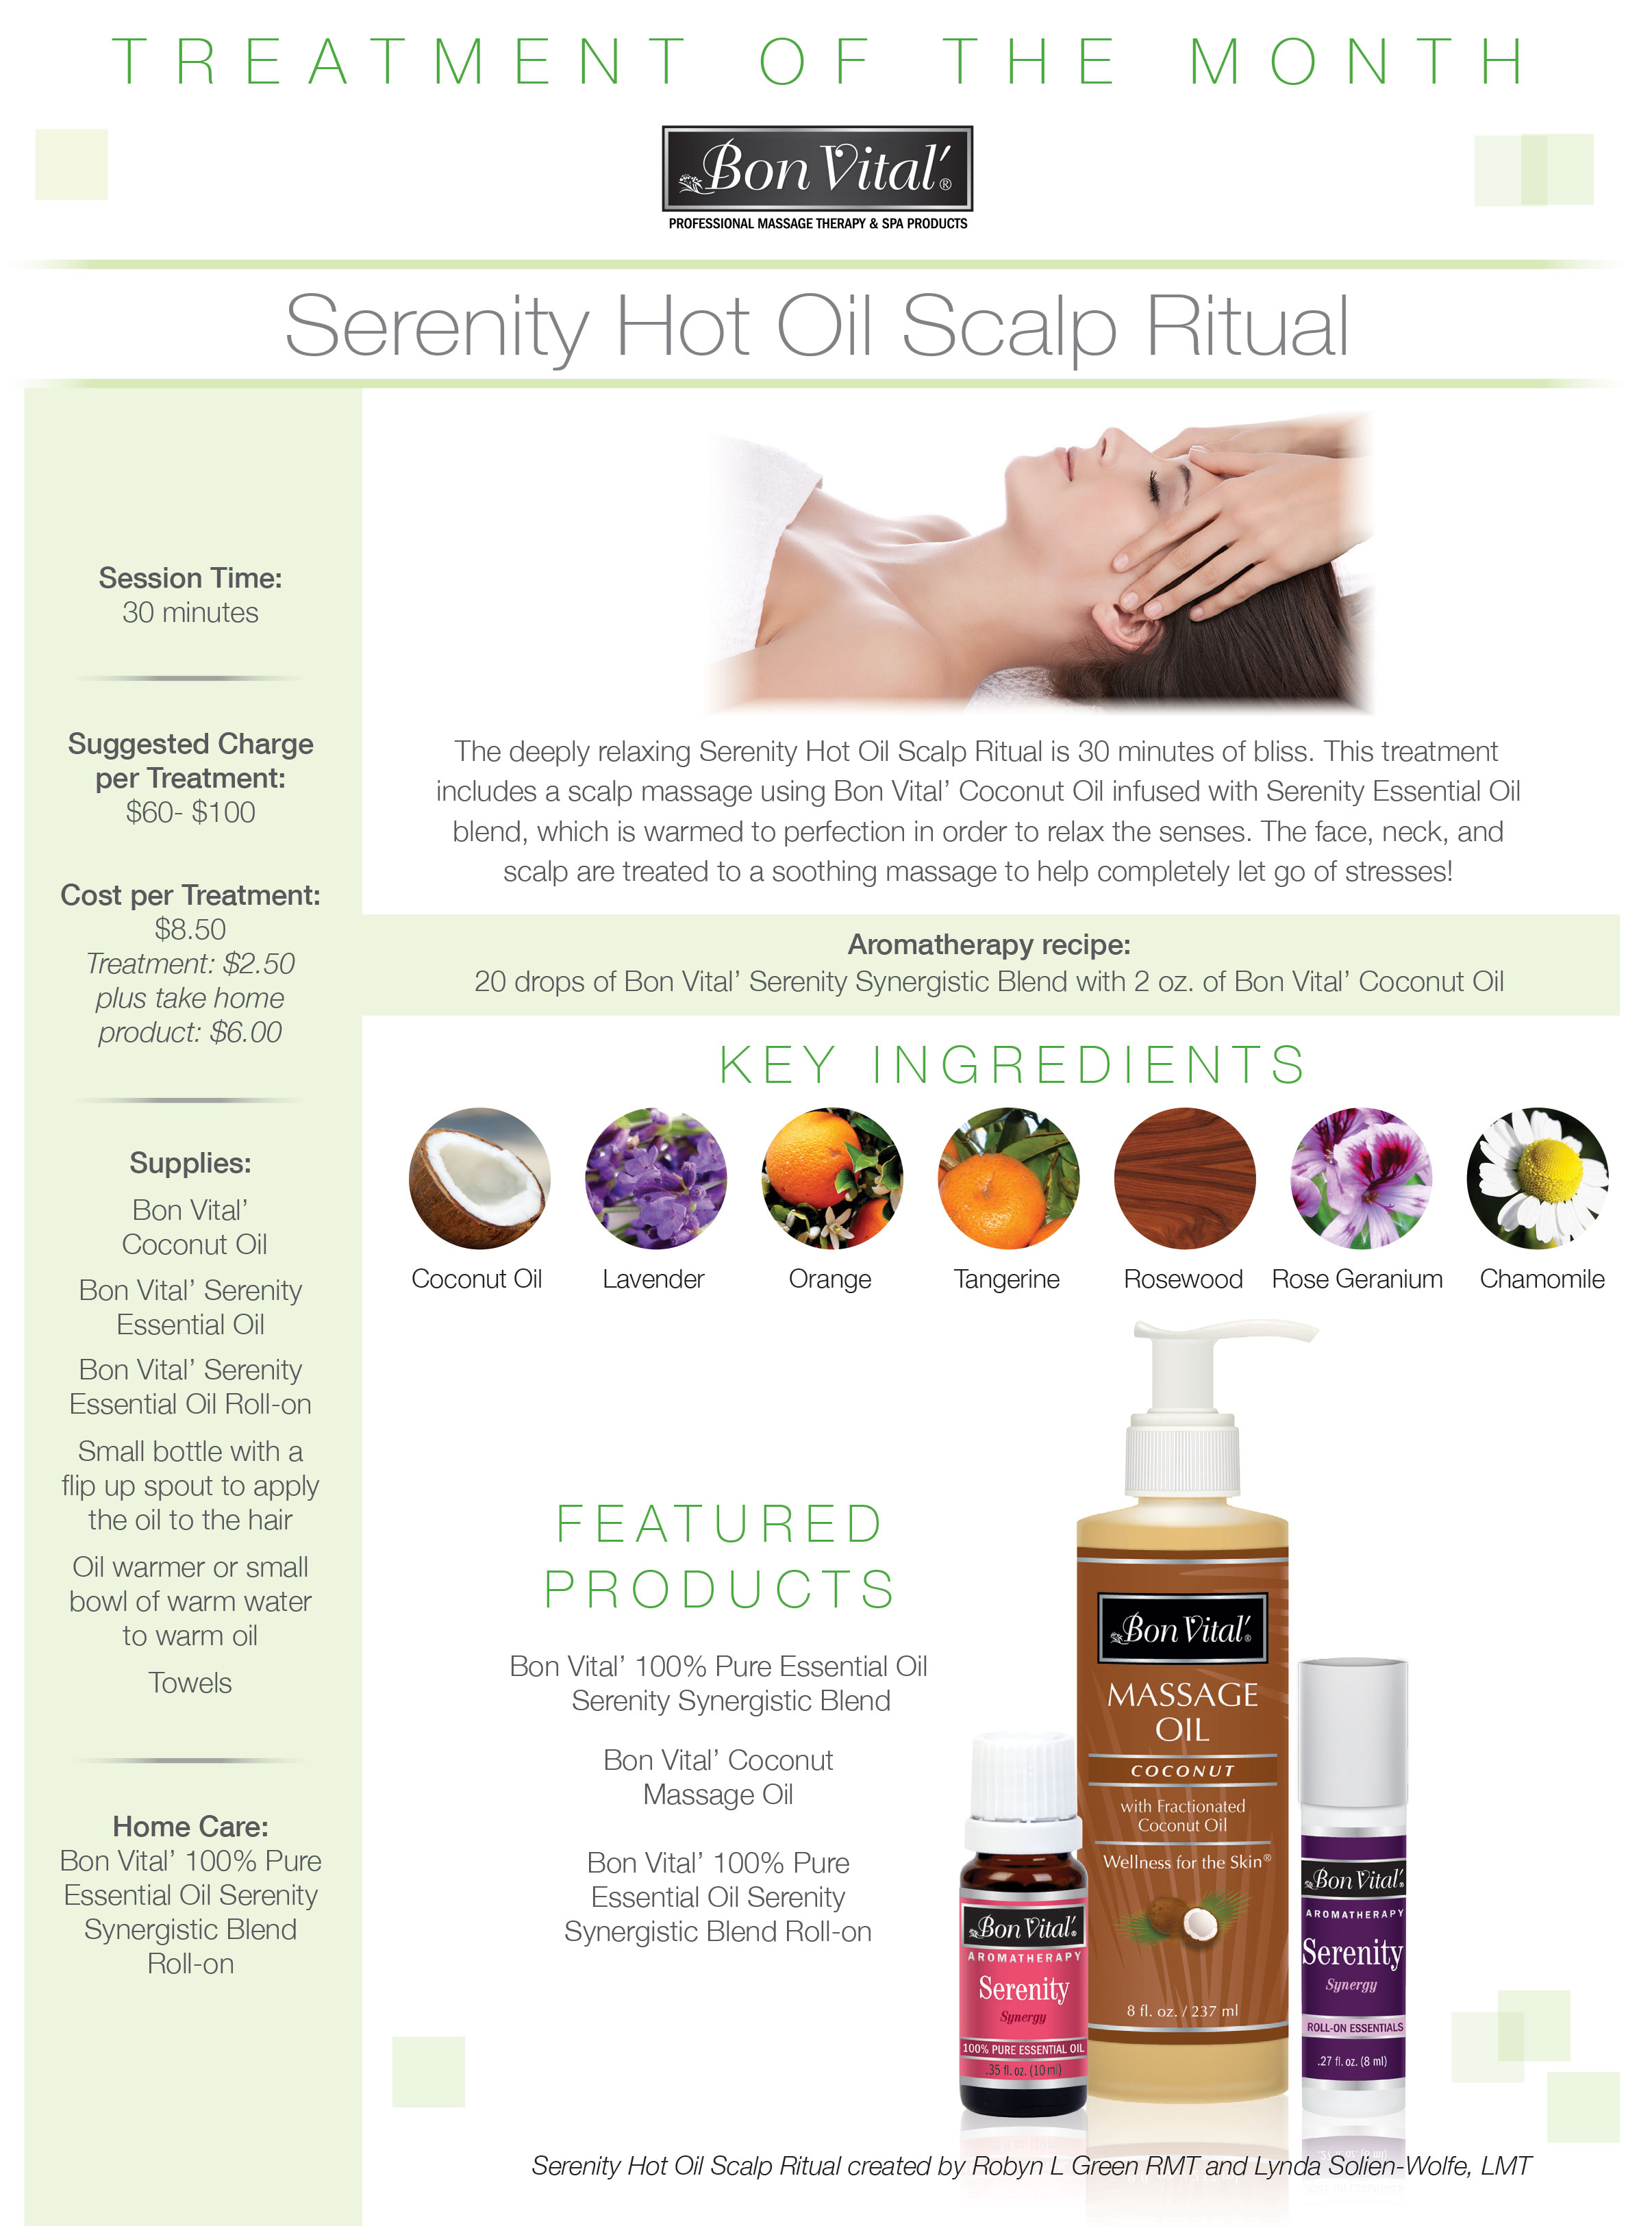 Serenity Hot Oil Scalp Ritual